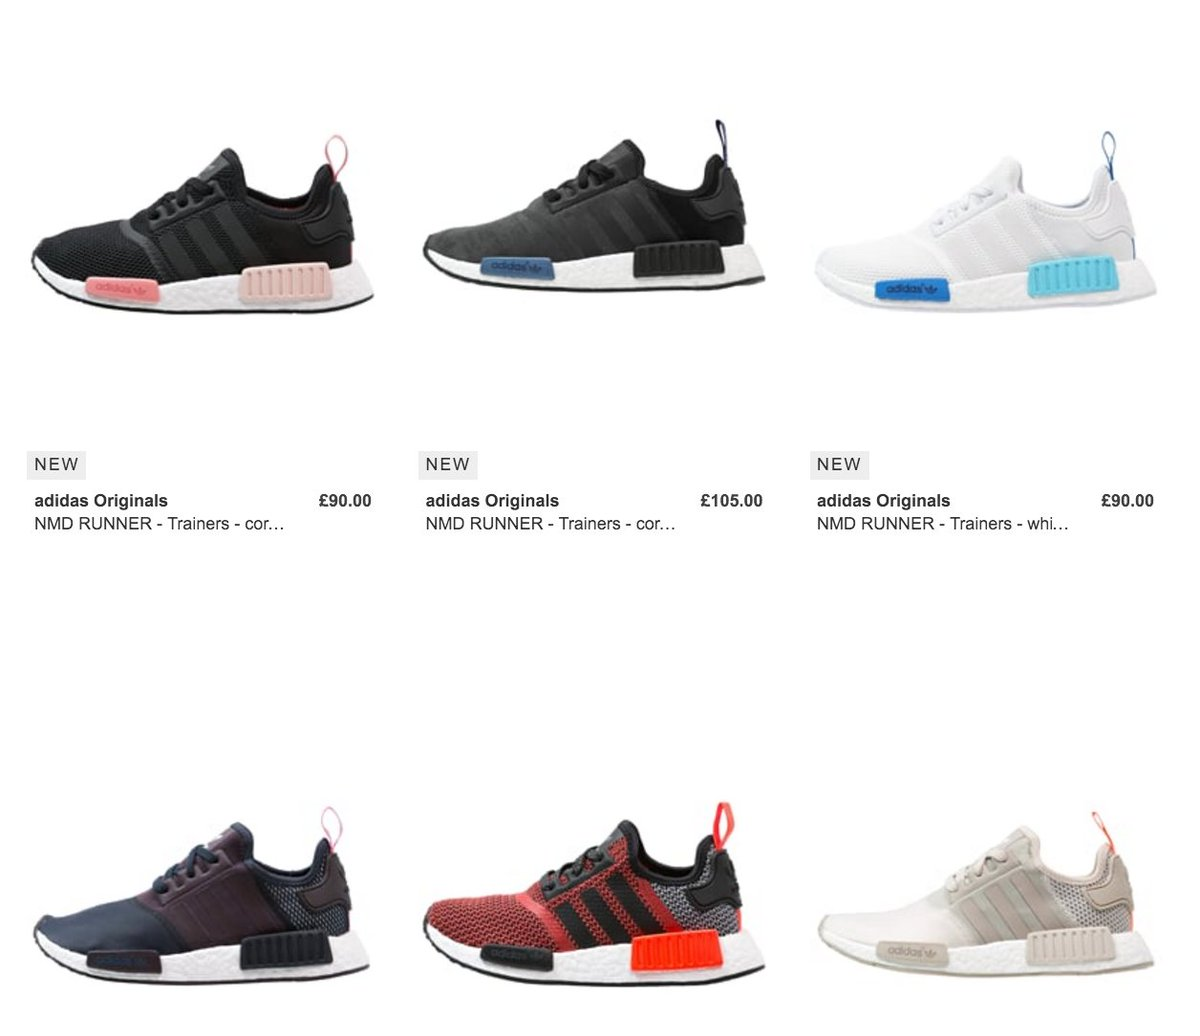 4247ffb72f ... promo code for sole links on twitter shipping to eu only adidas nmd  runners restocked in